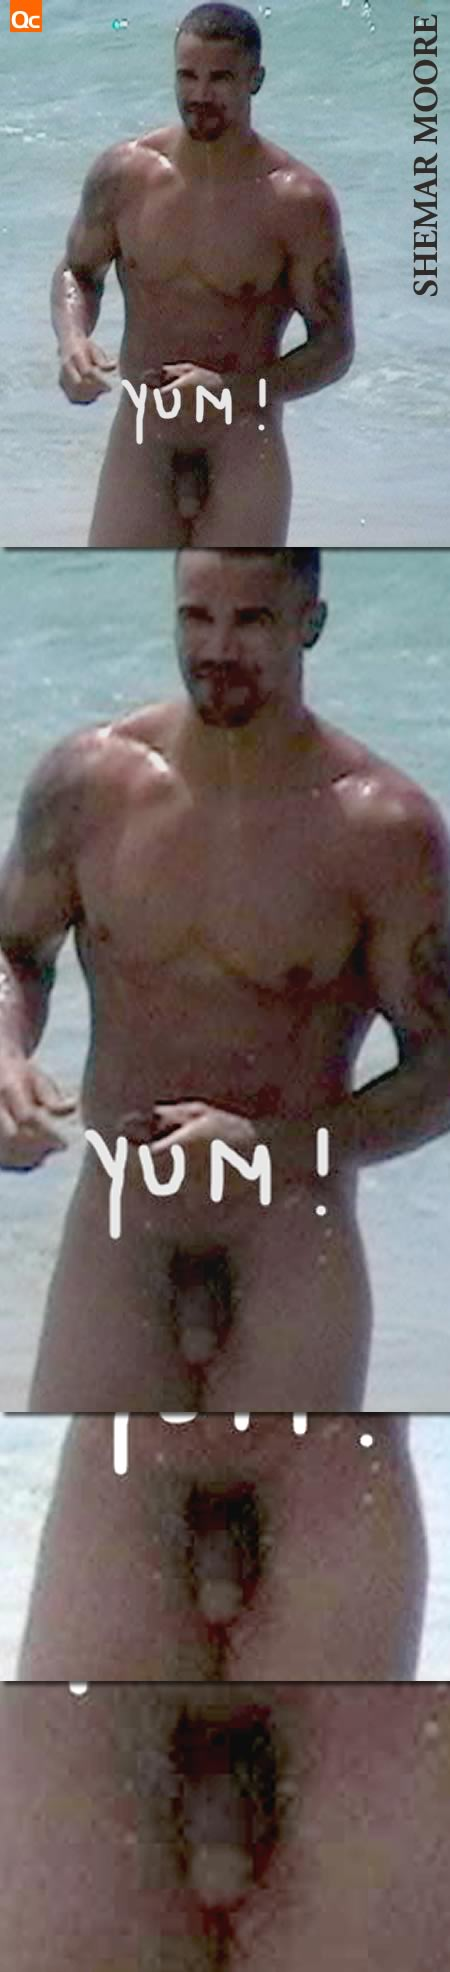 Shemar Moore Nude At Gay Beach. The National Enquirer ran some photos of the ...